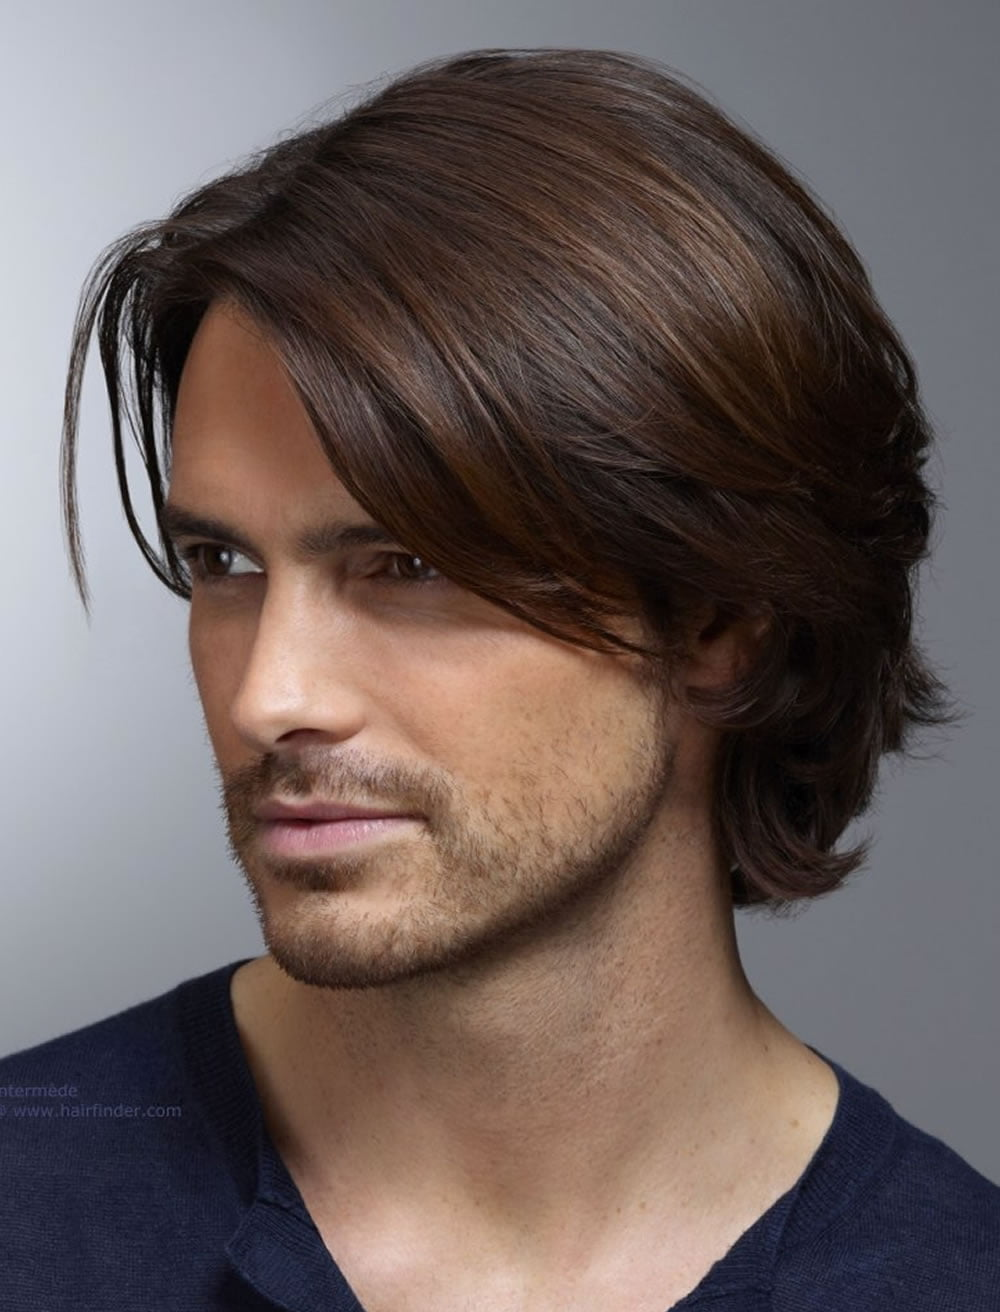 Top 20 Hairstyles For Men 2018 Best Haircut Ideas For